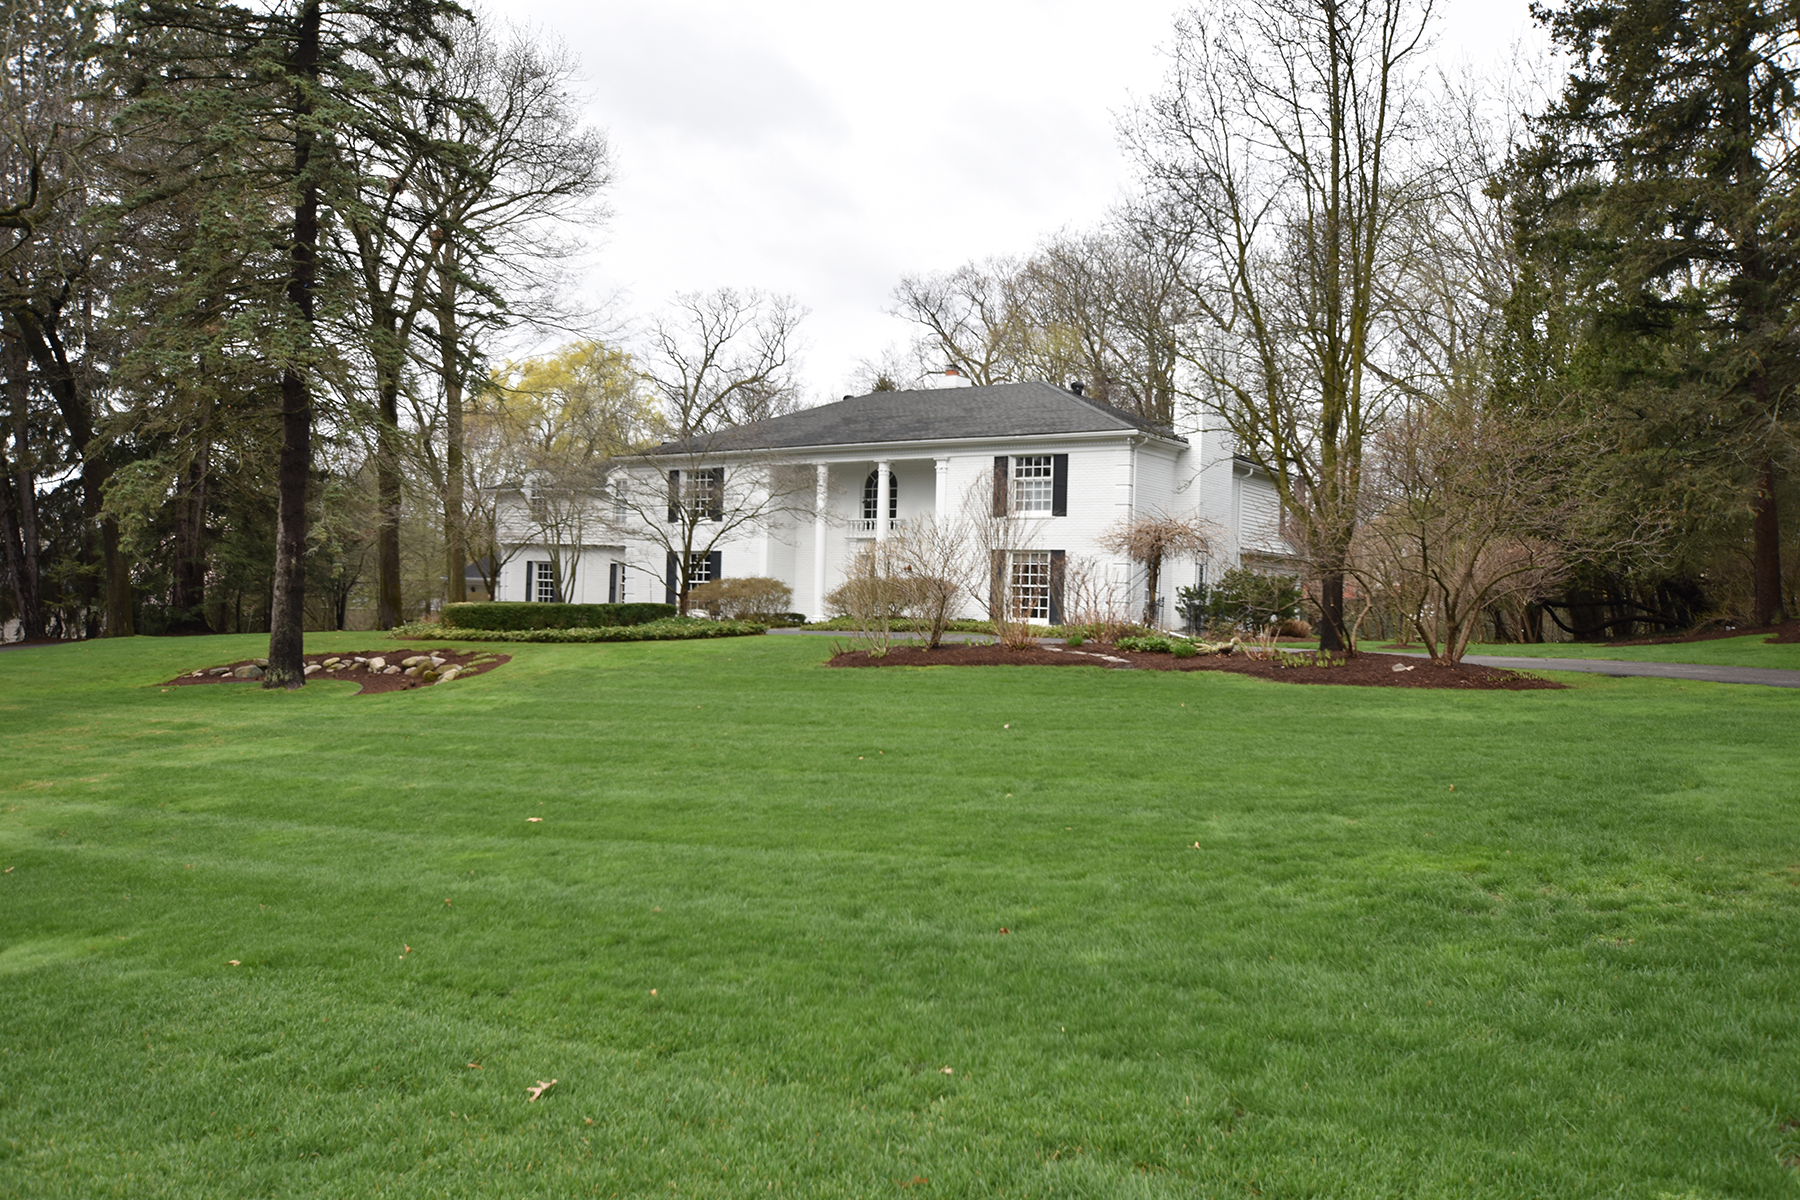 Single Family Homes for Sale at Bloomfield Hills 580 Haverhill Road Bloomfield Hills, Michigan 48304 United States